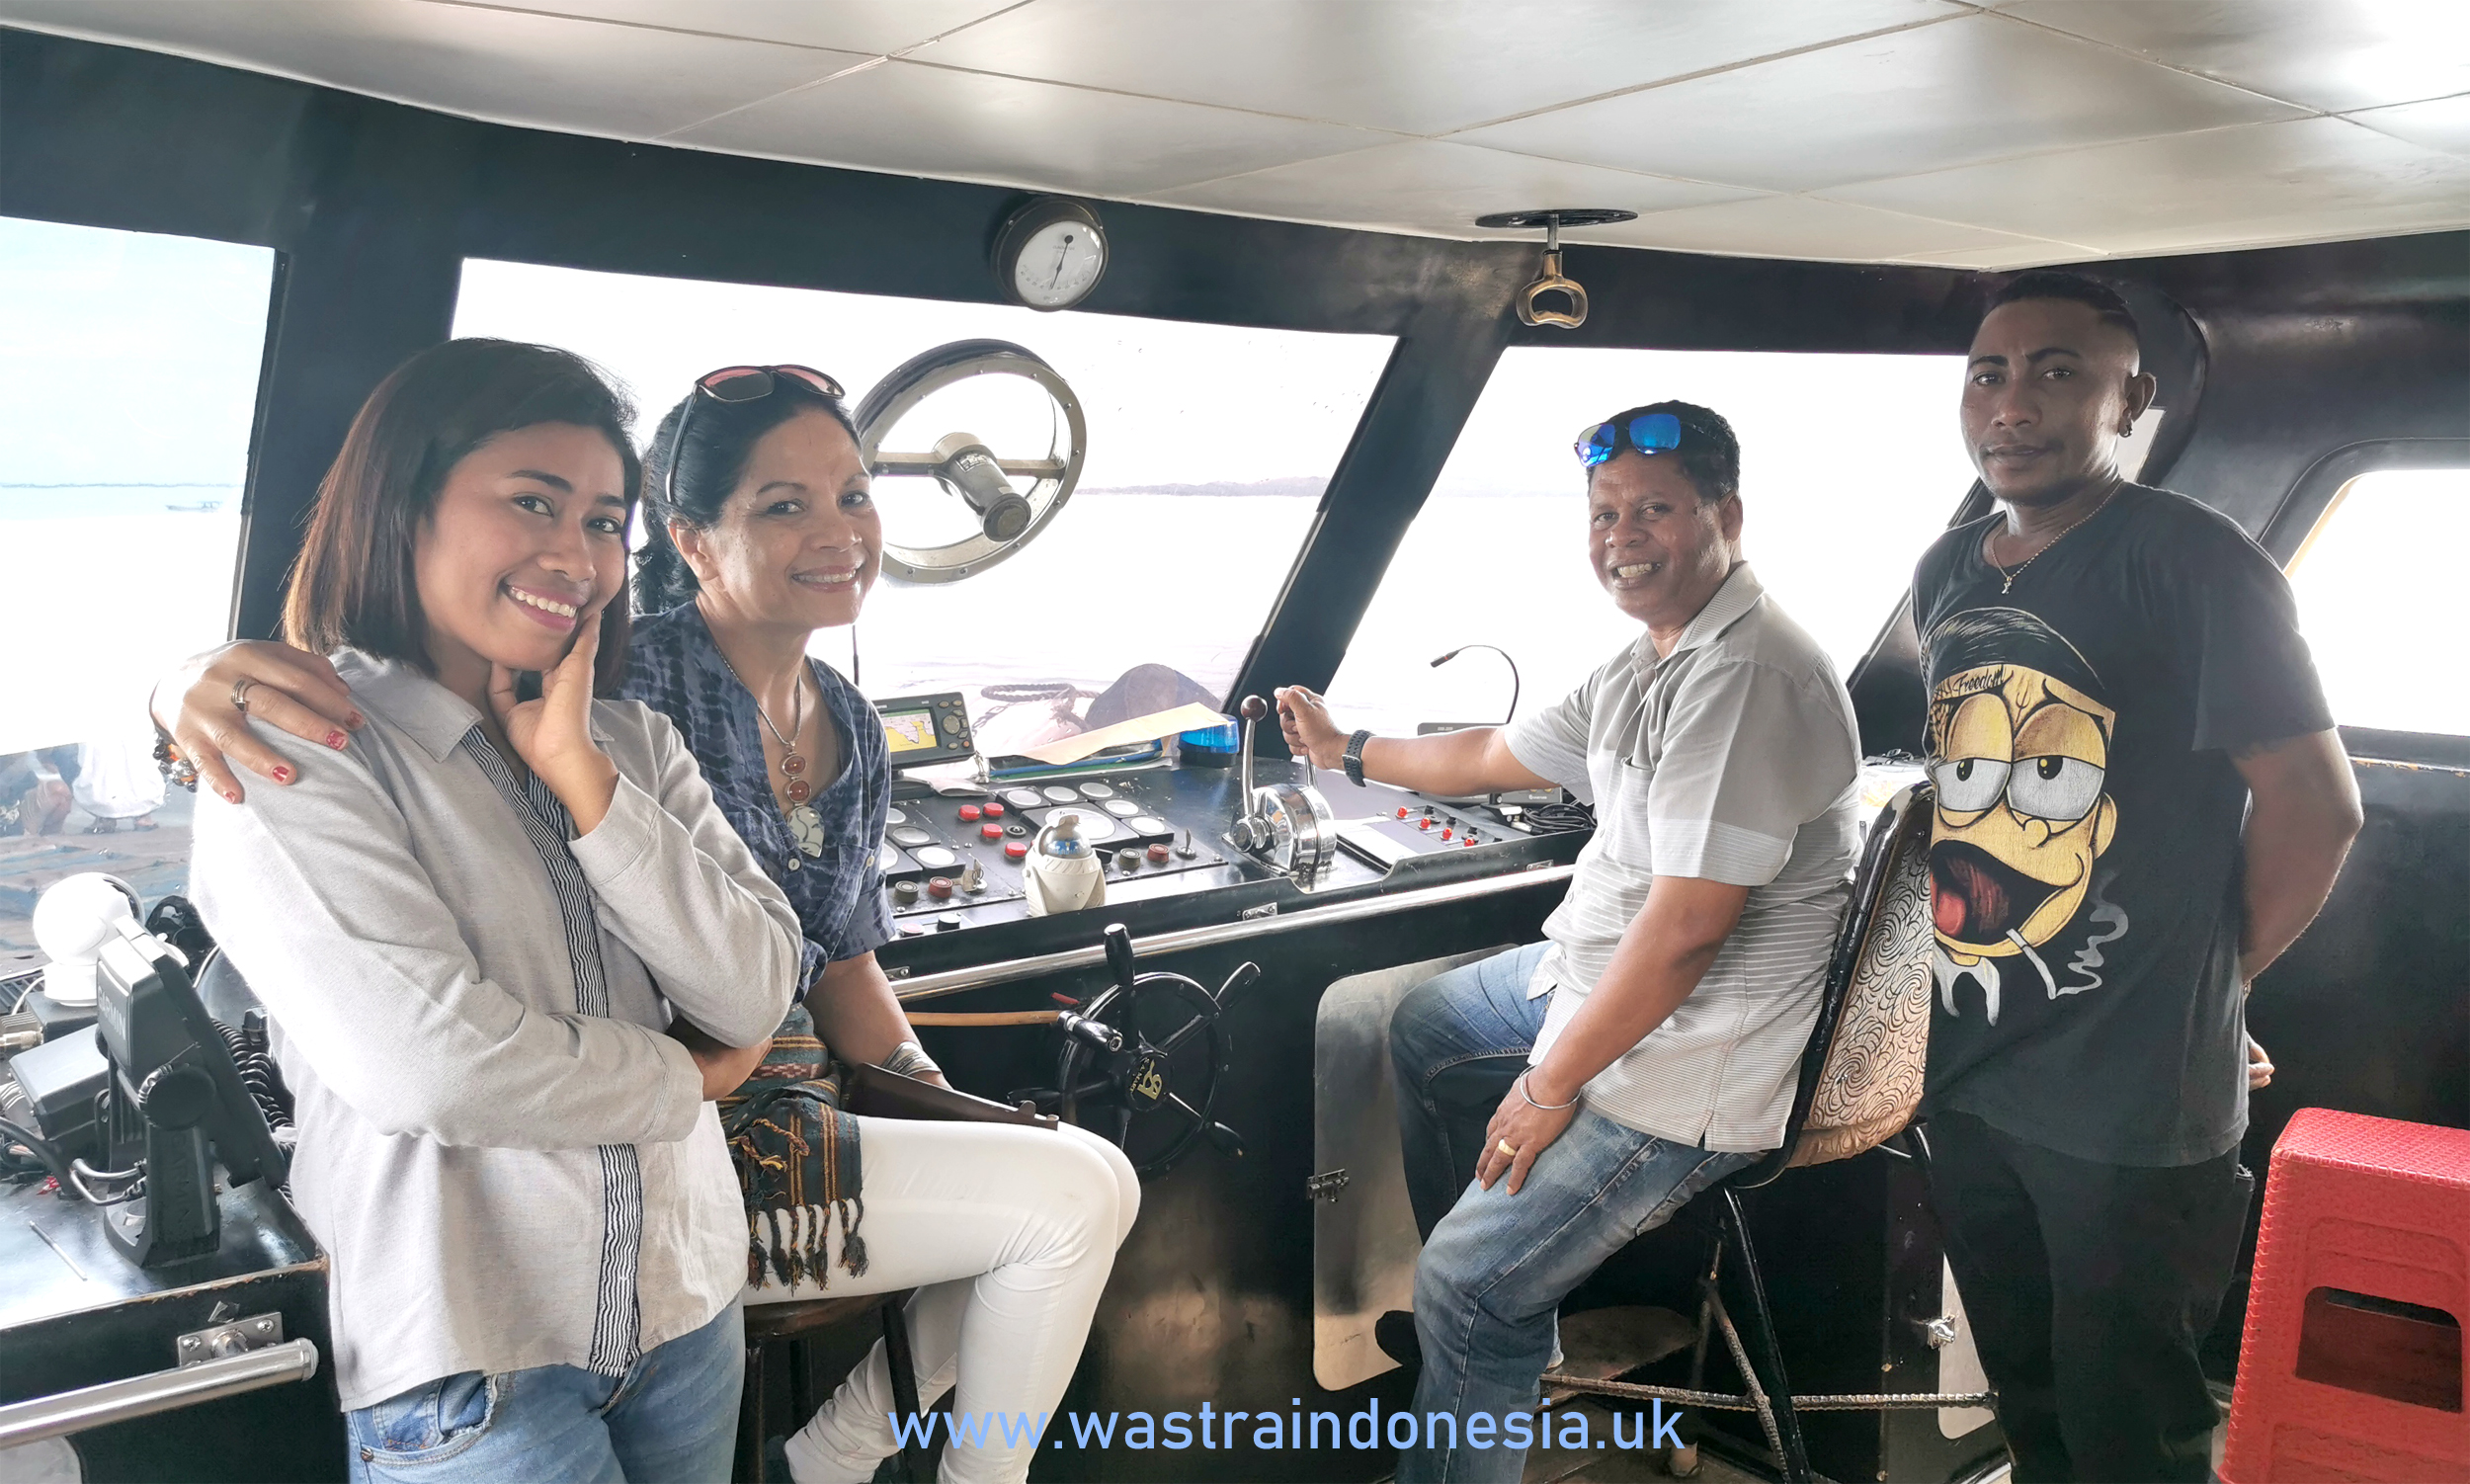 FROM LEMBATA TO LARANTUKA WITH LOVE – THE FAST BOAT CROSSING